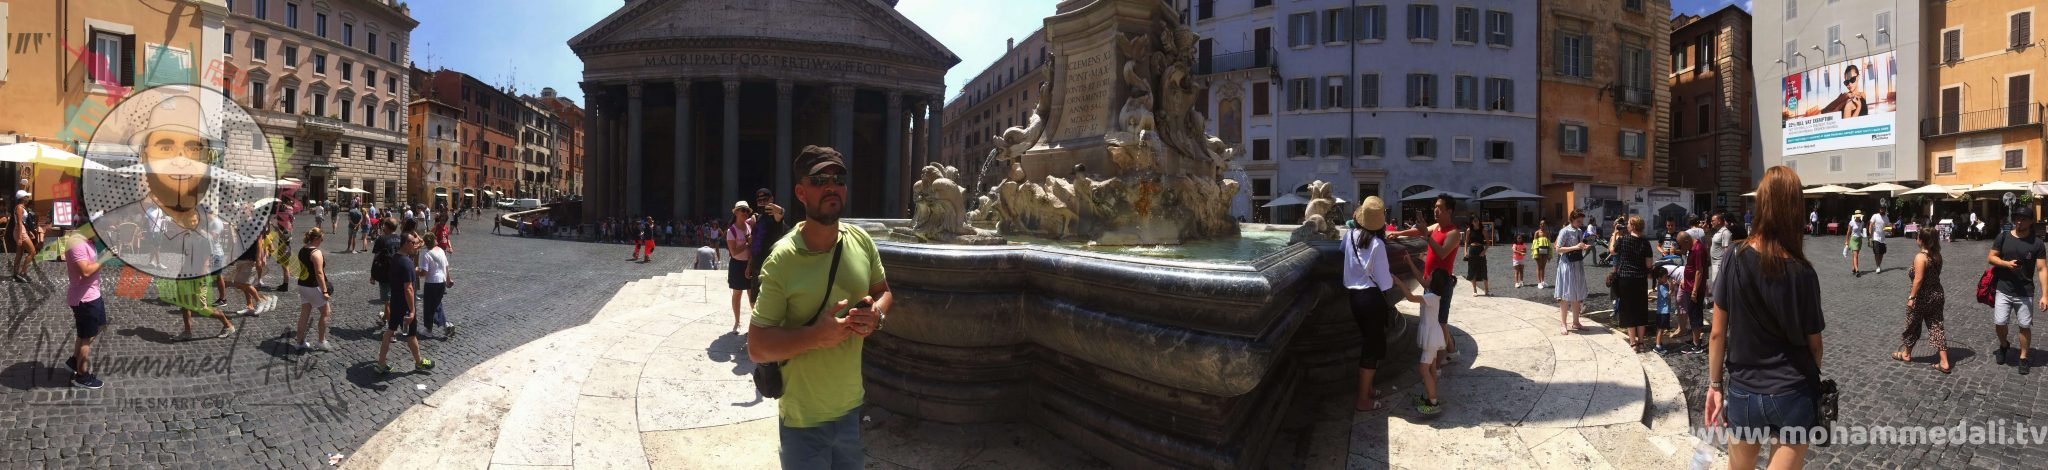 Panoramic view of Piazza della Rotonda in front of Pantheon in Rome